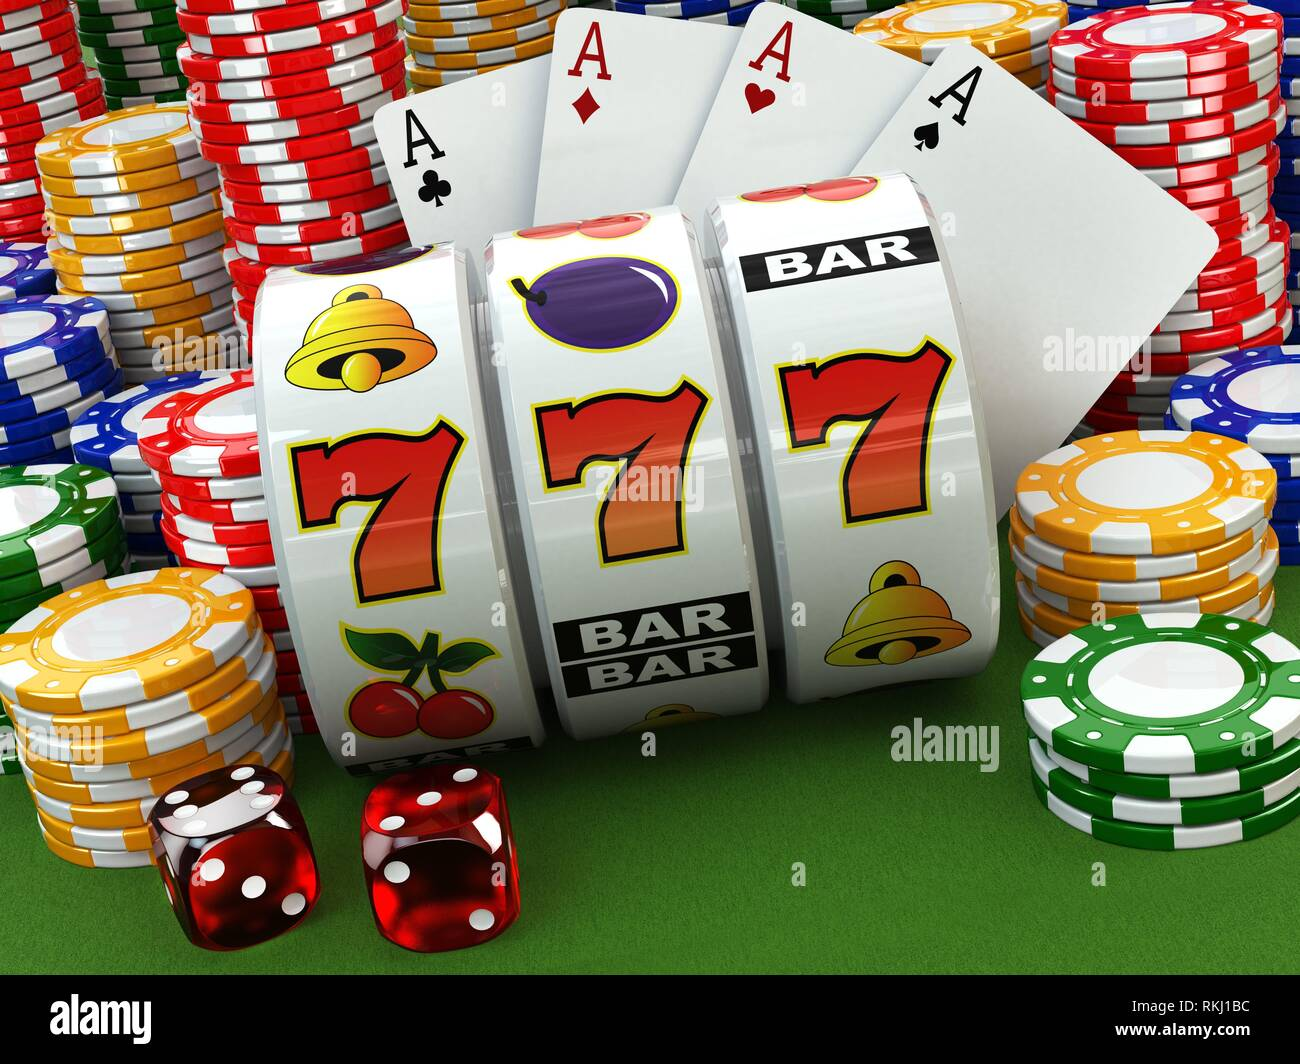 Casino Concept Jackpot Poker Cards Chips And Dice 3d Stock Photo Alamy